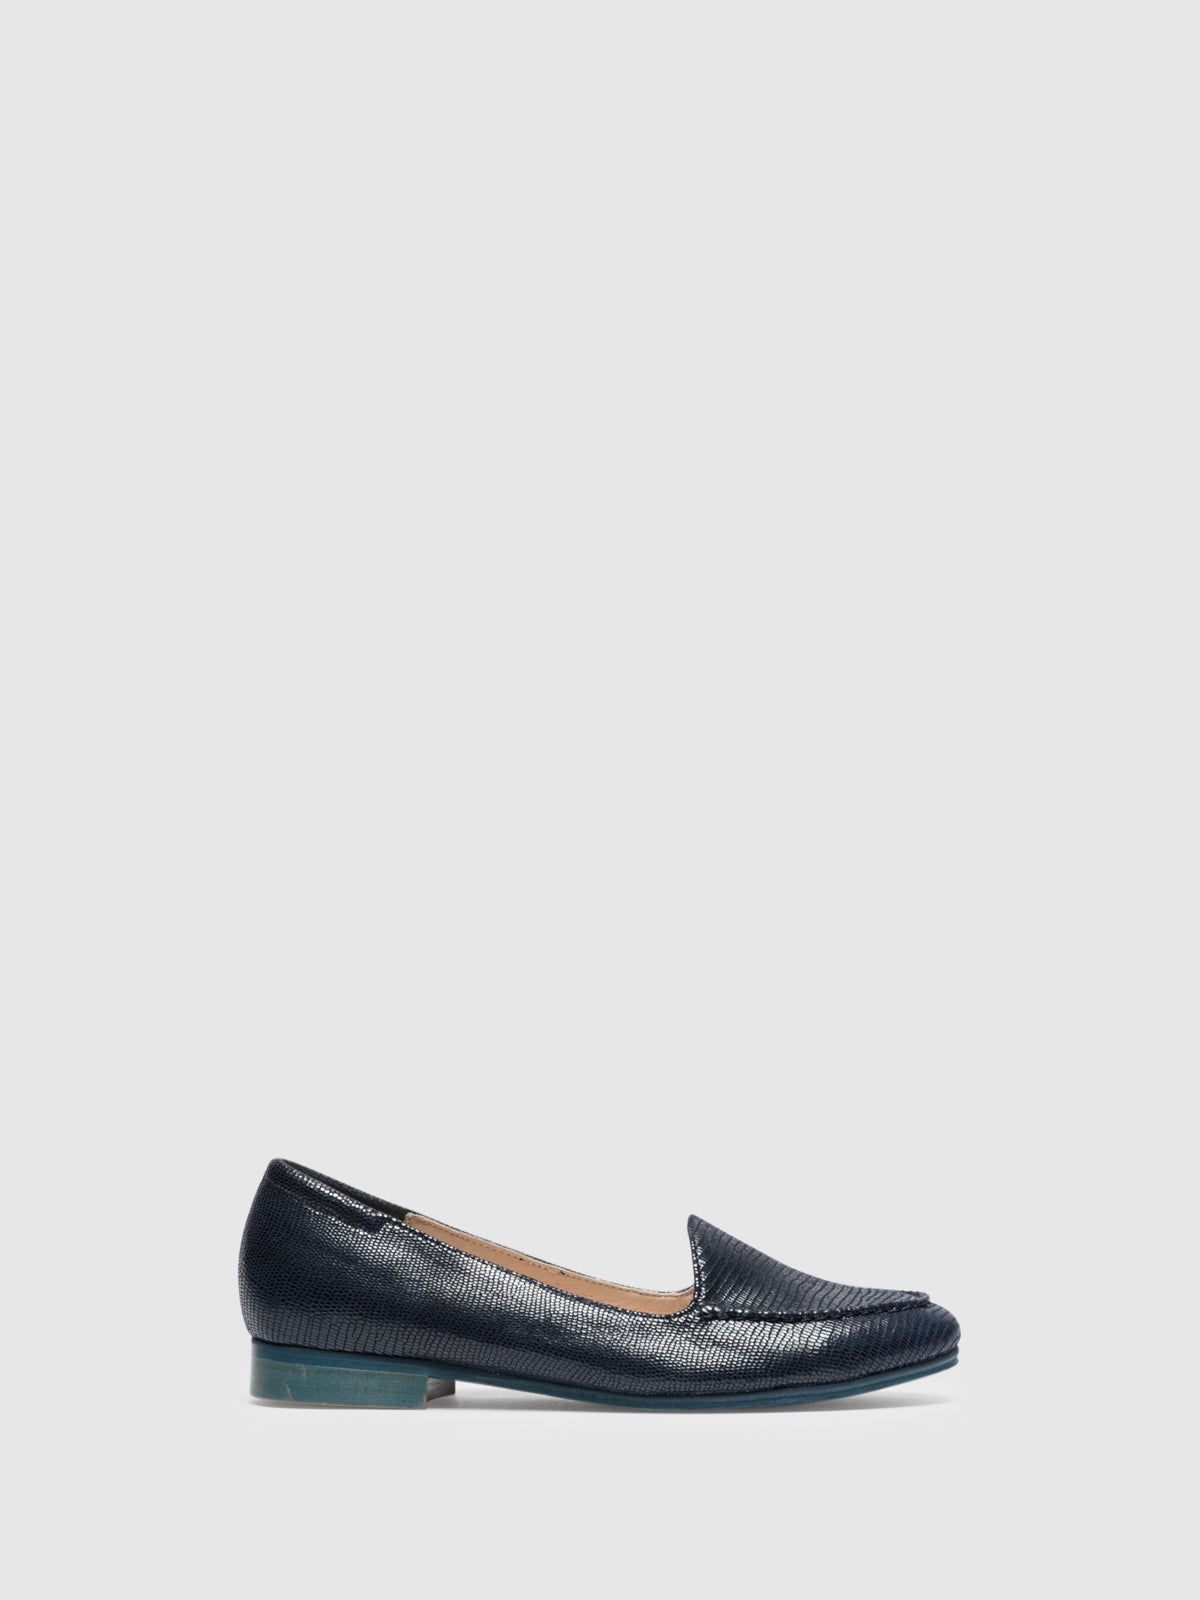 Foreva Blue Mocassins Shoes